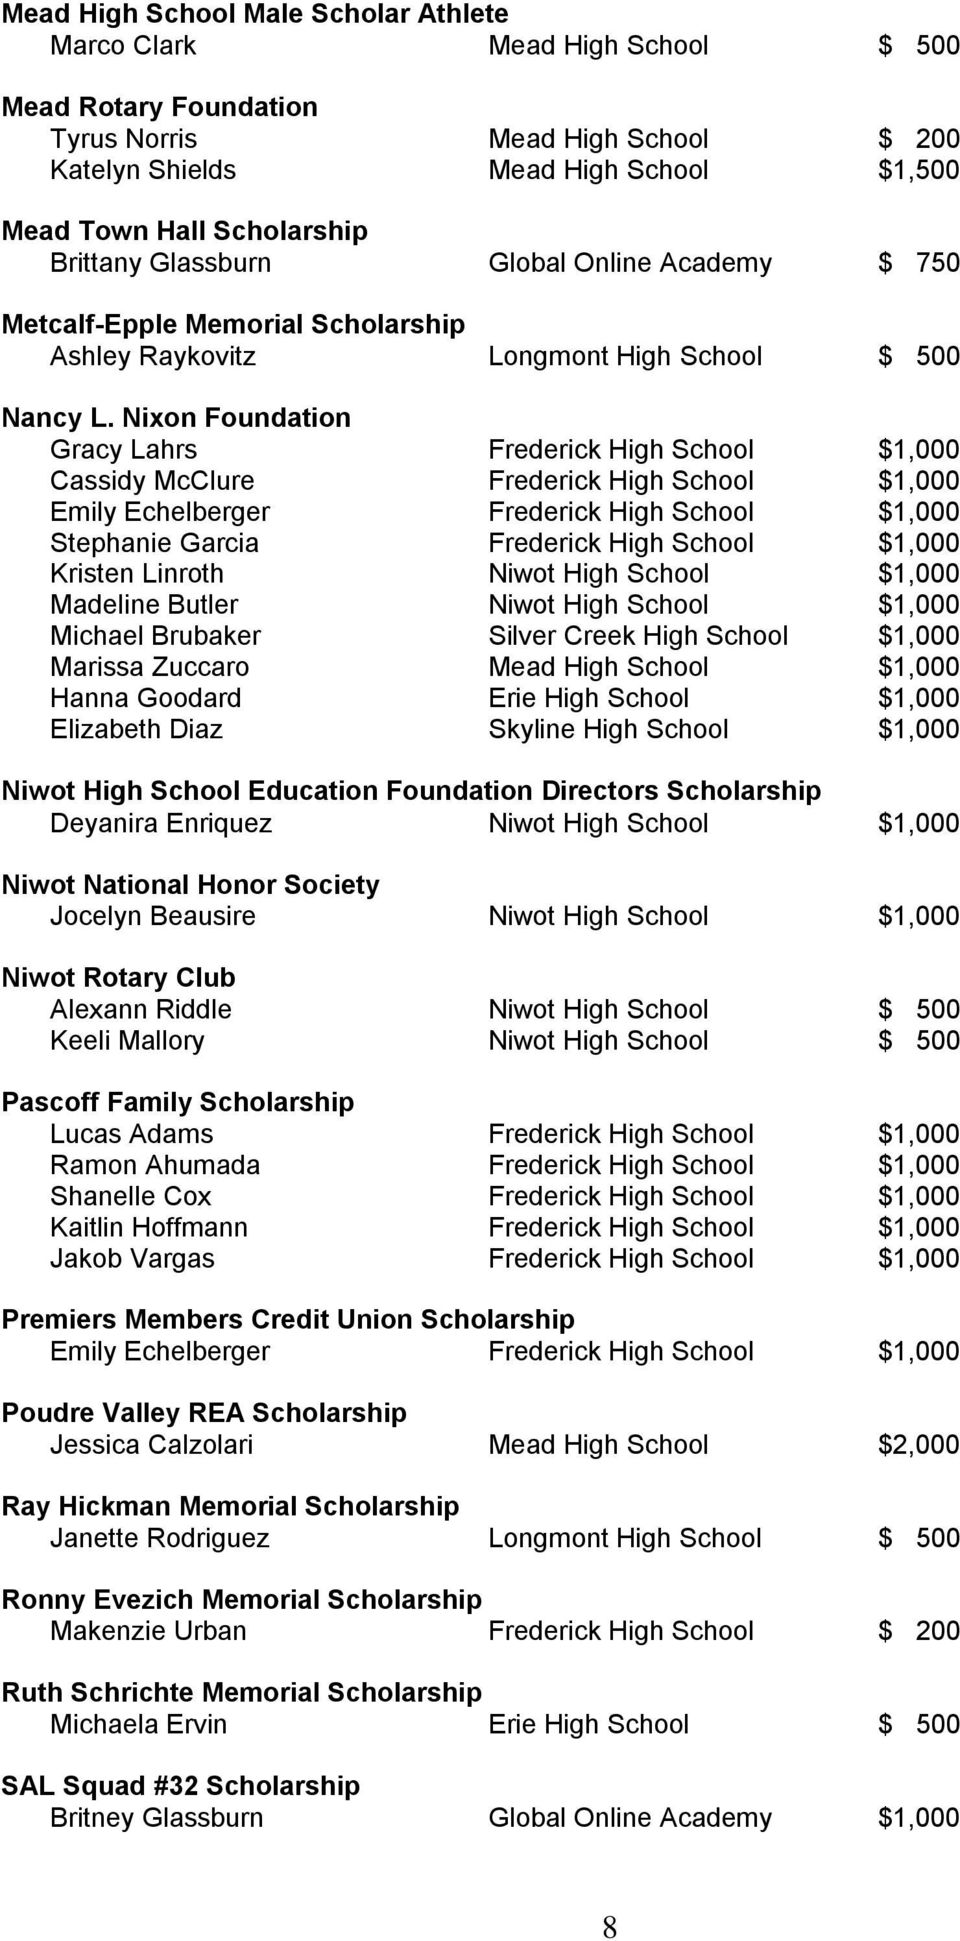 Nixon Foundation Gracy Lahrs Frederick High School $1,000 Cassidy McClure Frederick High School $1,000 Emily Echelberger Frederick High School $1,000 Stephanie Garcia Frederick High School $1,000